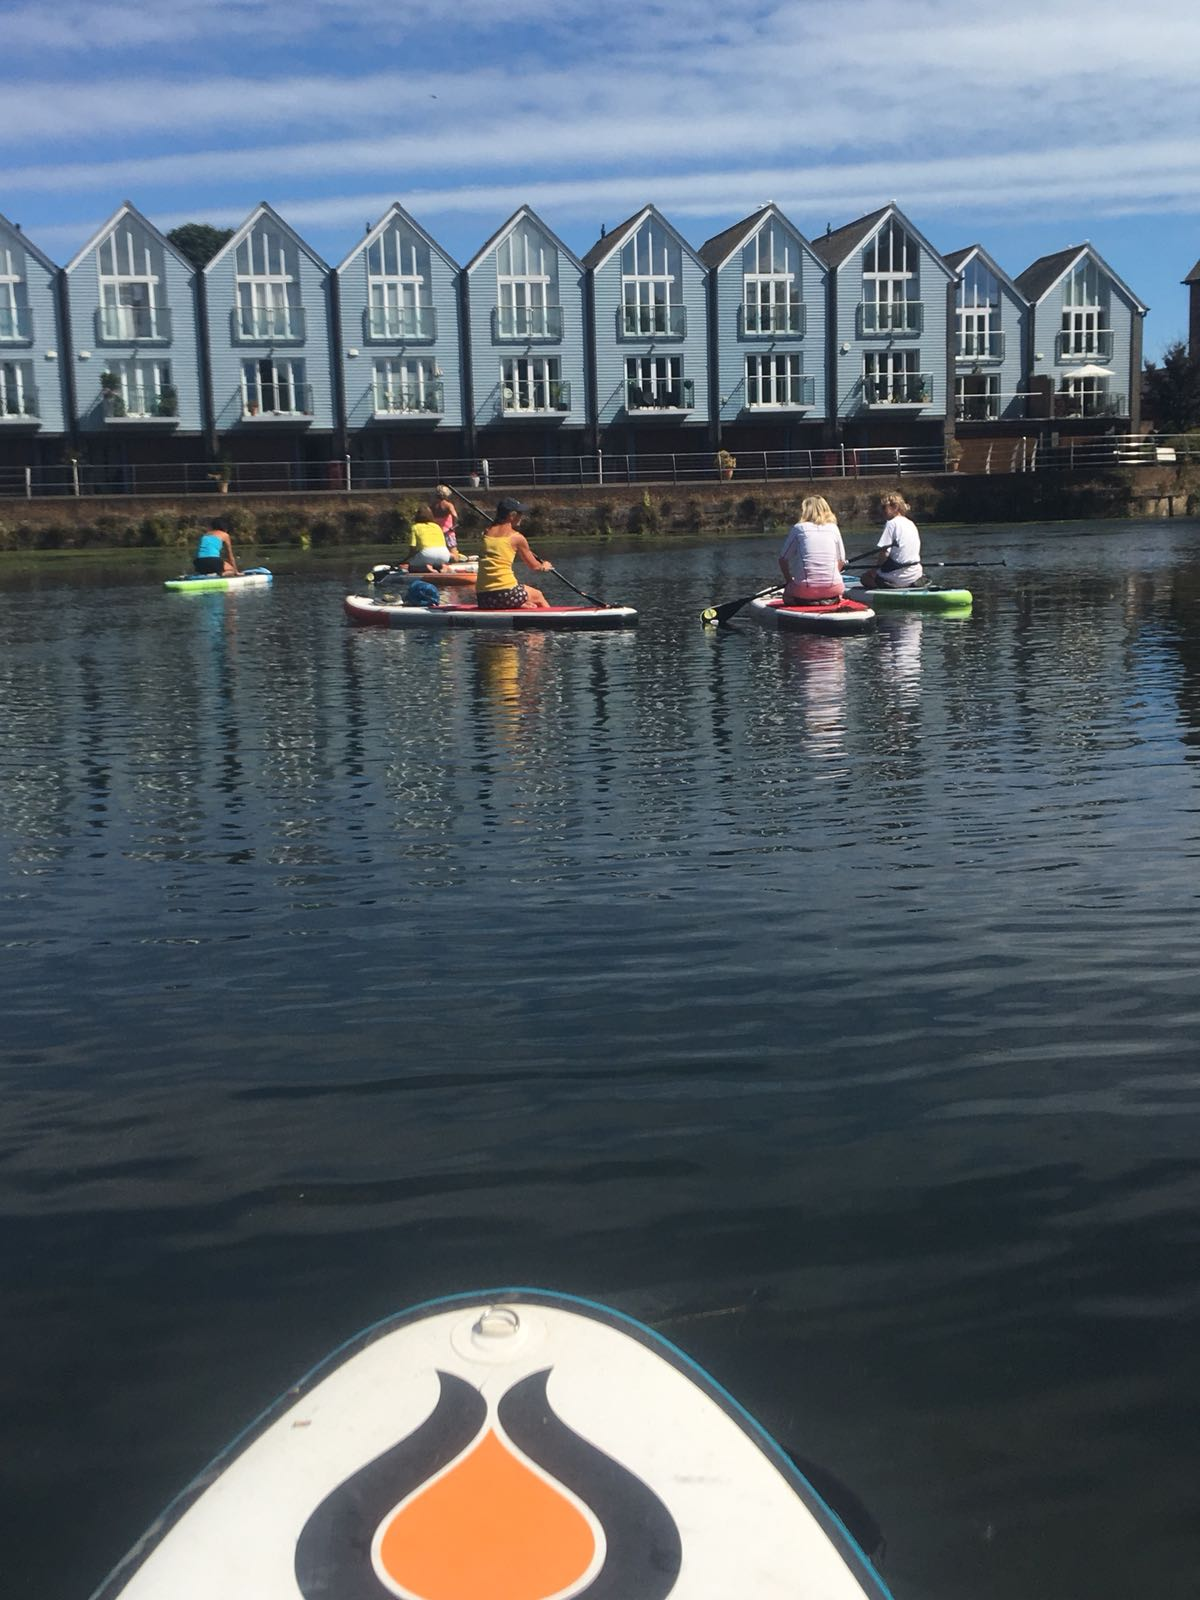 Paddle boarders in Chichester basin